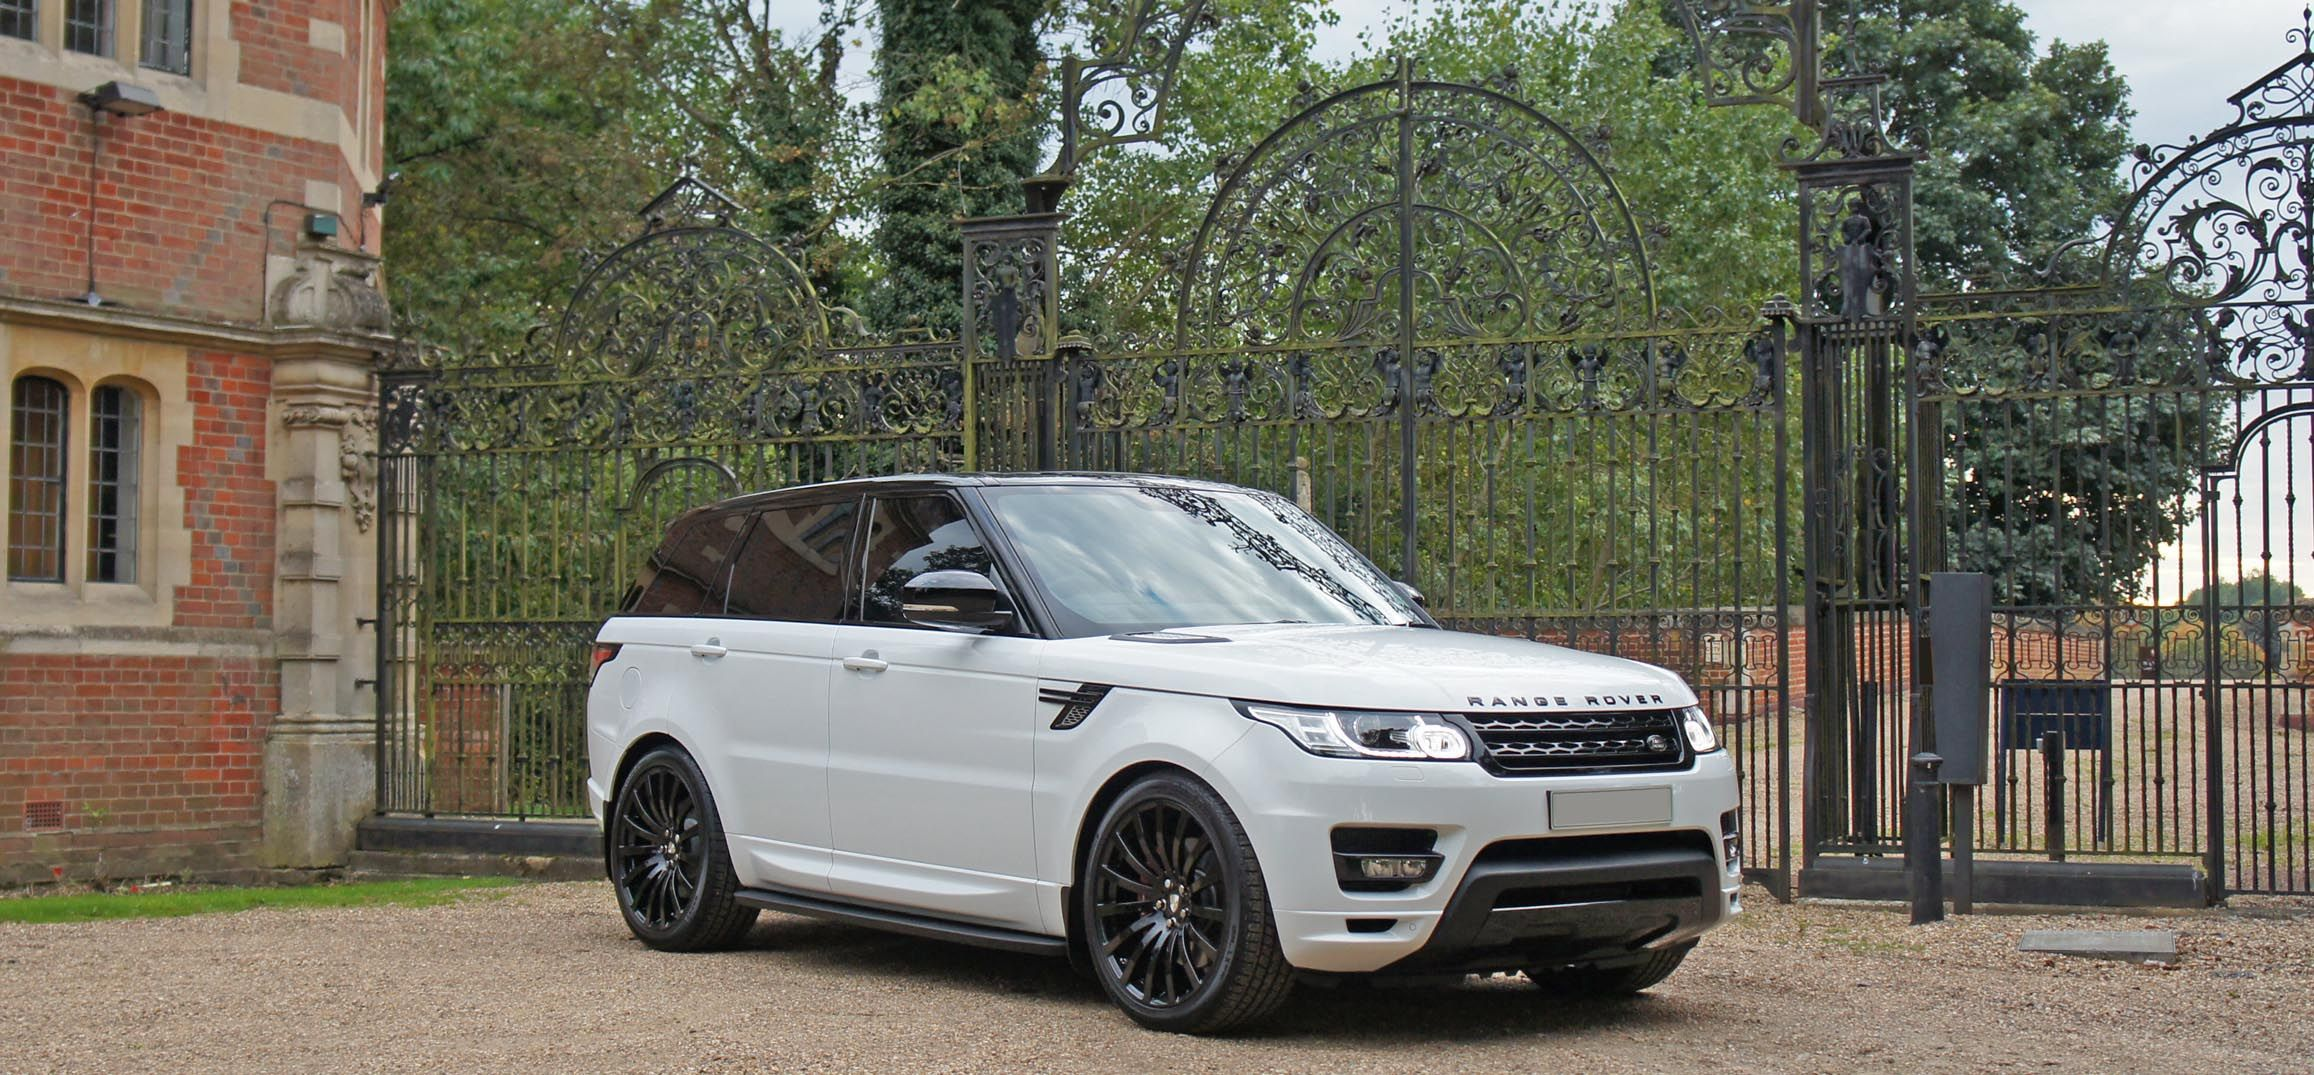 Land rover range rover sport 2014 onwards exterior revere london